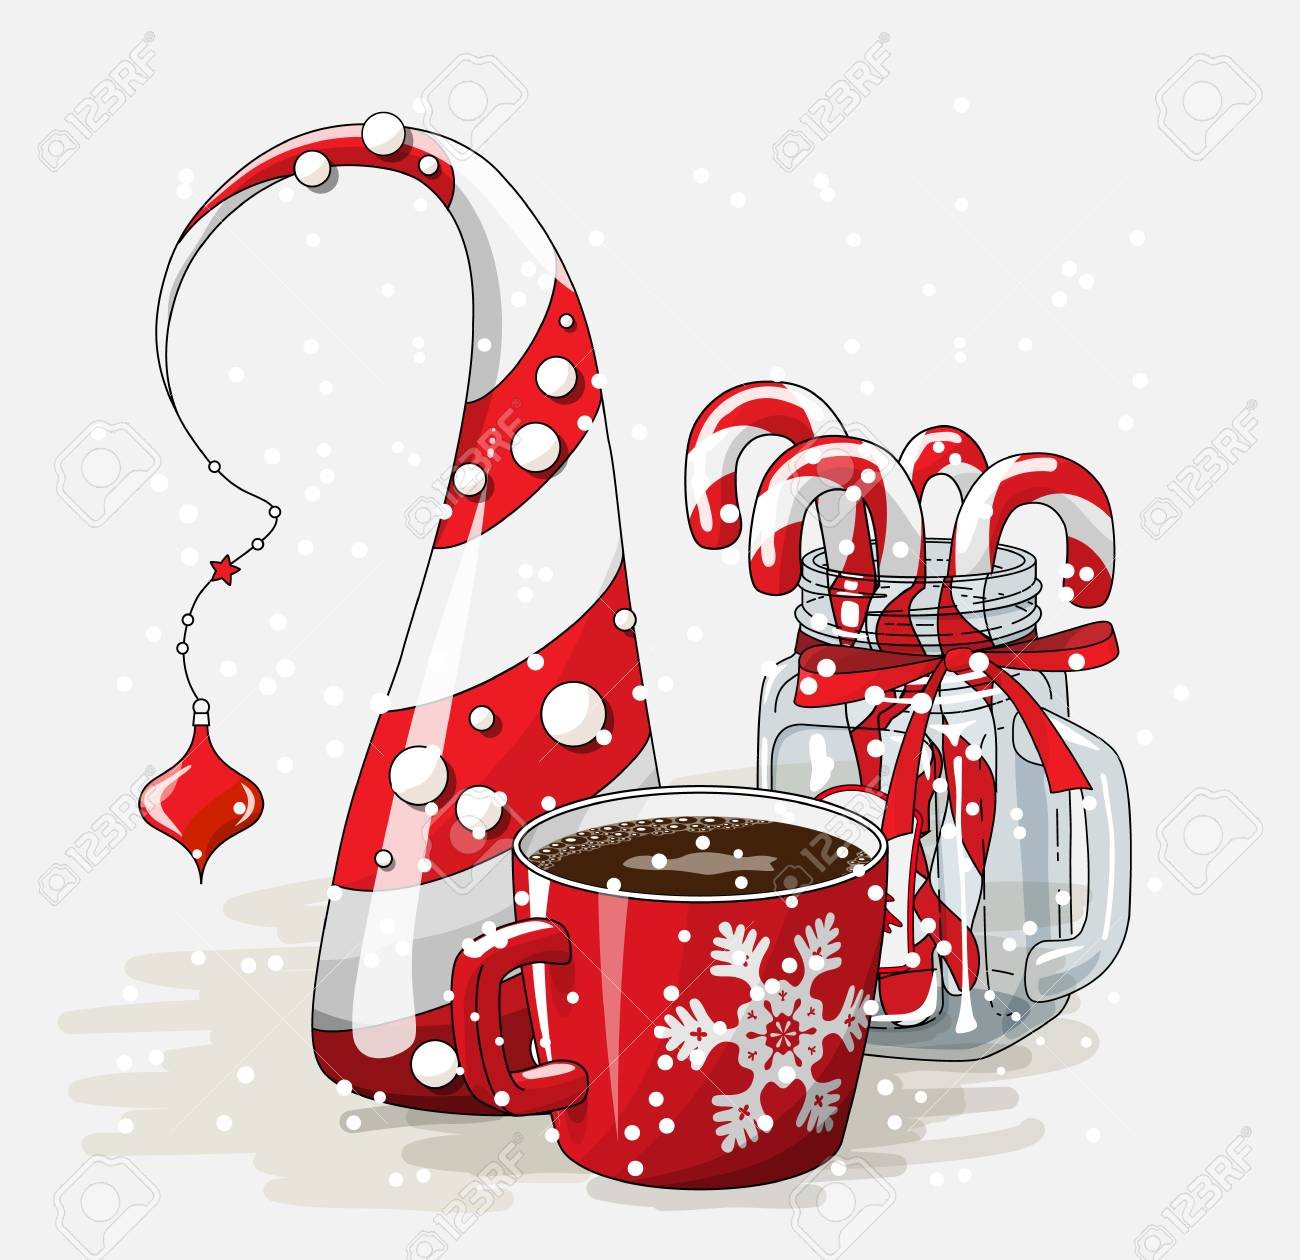 Holidays Vintage Motive, Red Cup Of Coffee With Abstract Christmas.